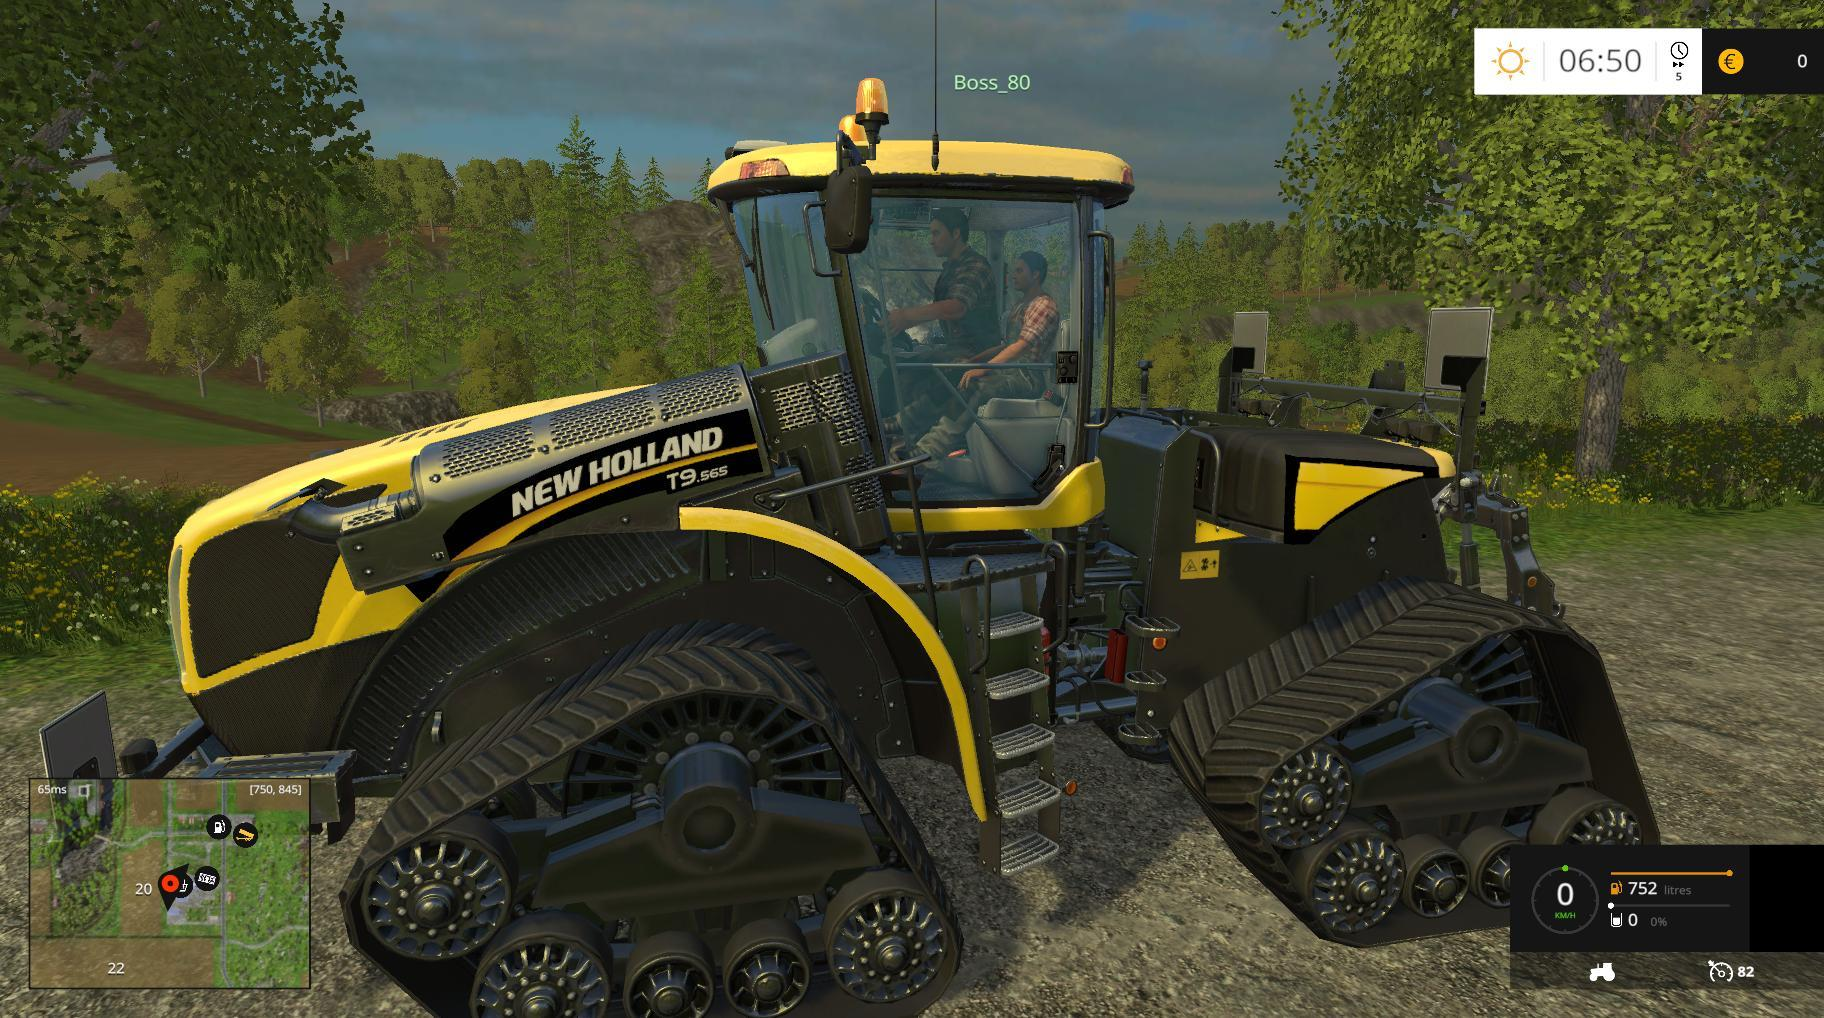 Tractor Simulator 2 : New holland t smarttrax tractor v farming